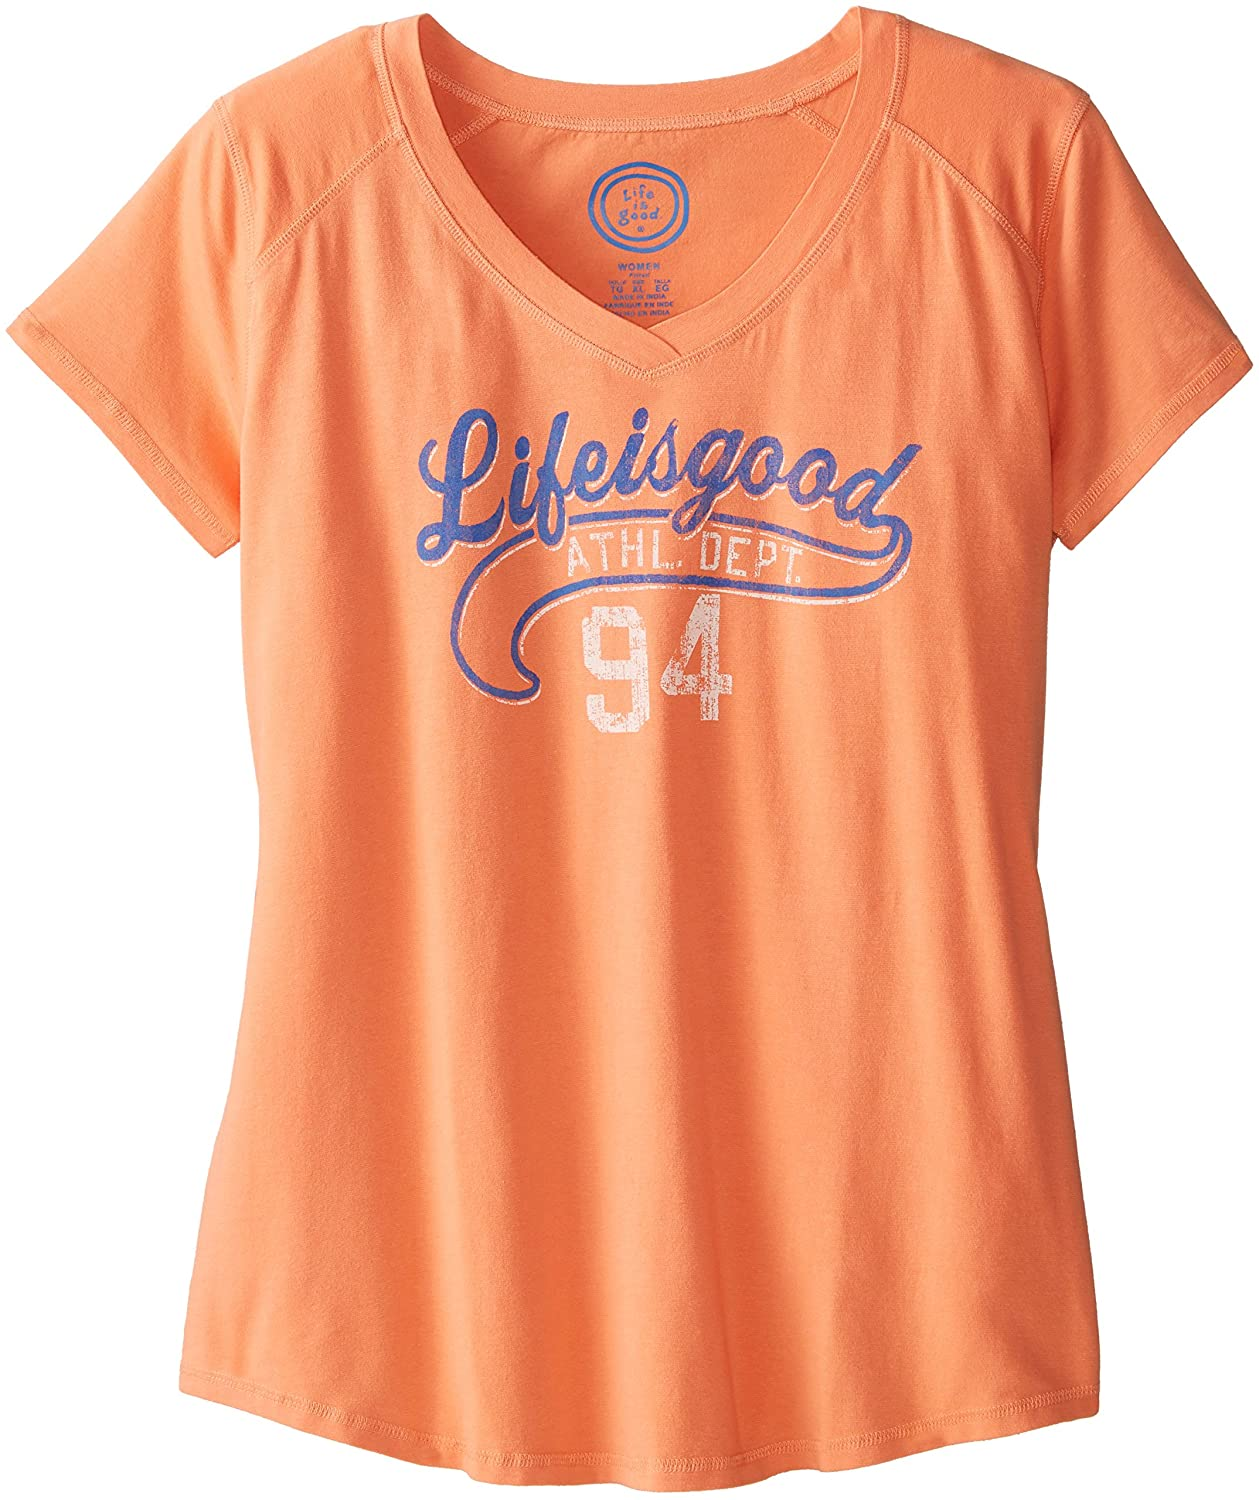 Life is good Women's Vee LIG Athletics Dept. Tech Tee